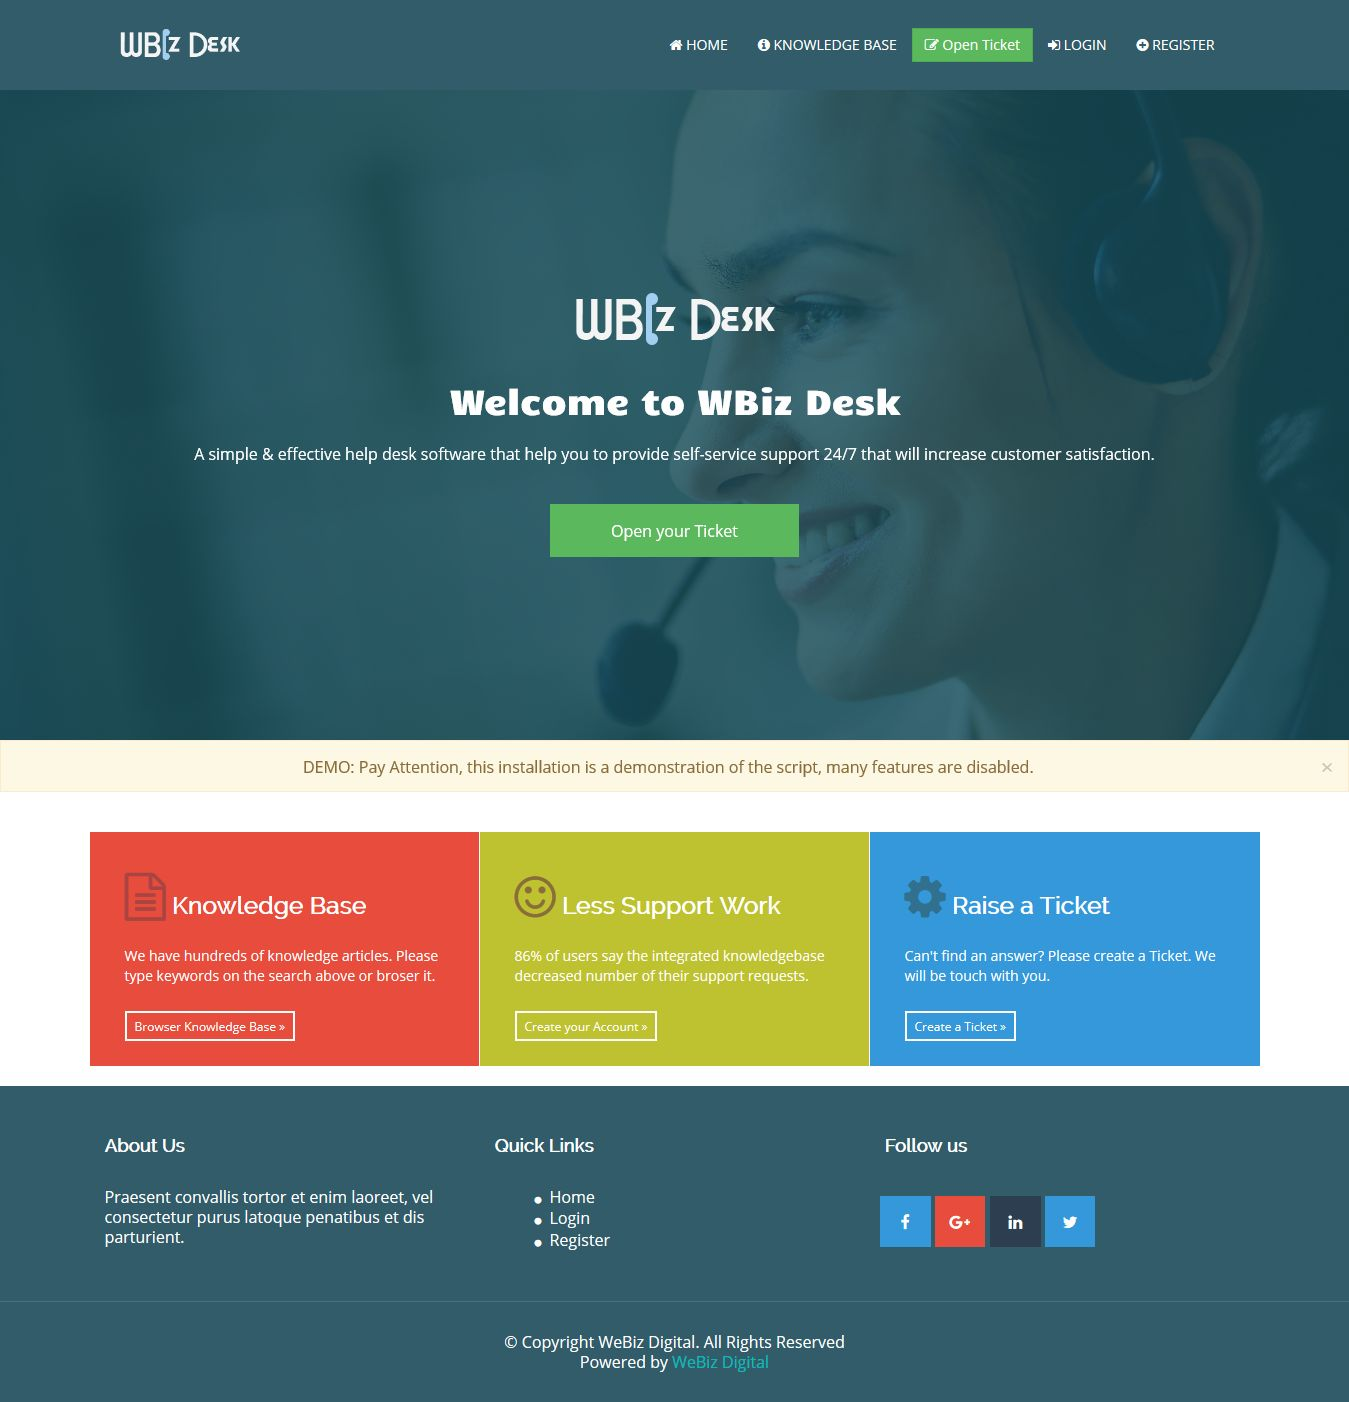 WBiz Desk - Simple and Effective Help Desk System Screenshot 1